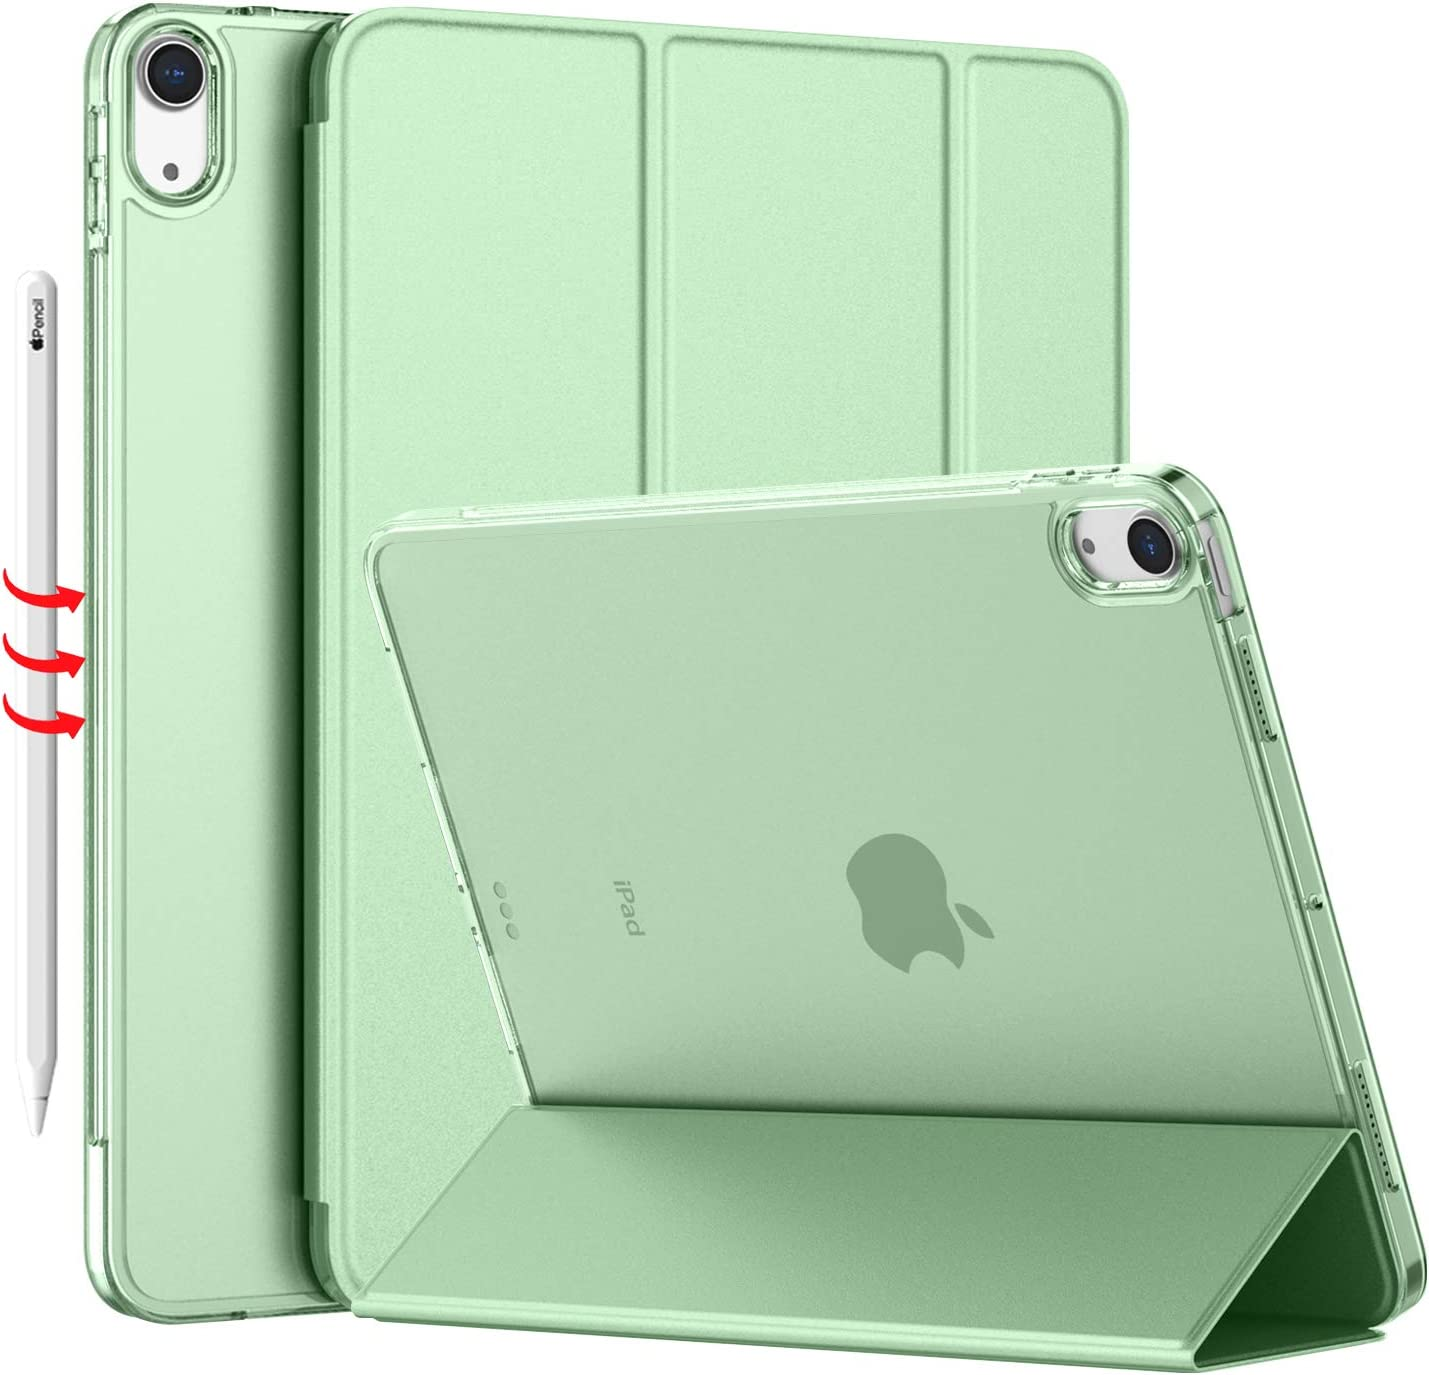 iMieet iPad Air 4 Case 2020 - iPad Air 4th Generation Case 10.9 Inch Lightweight Slim Cover with Translucent Frosted Hard Back [Support Touch ID](Matcha Green)